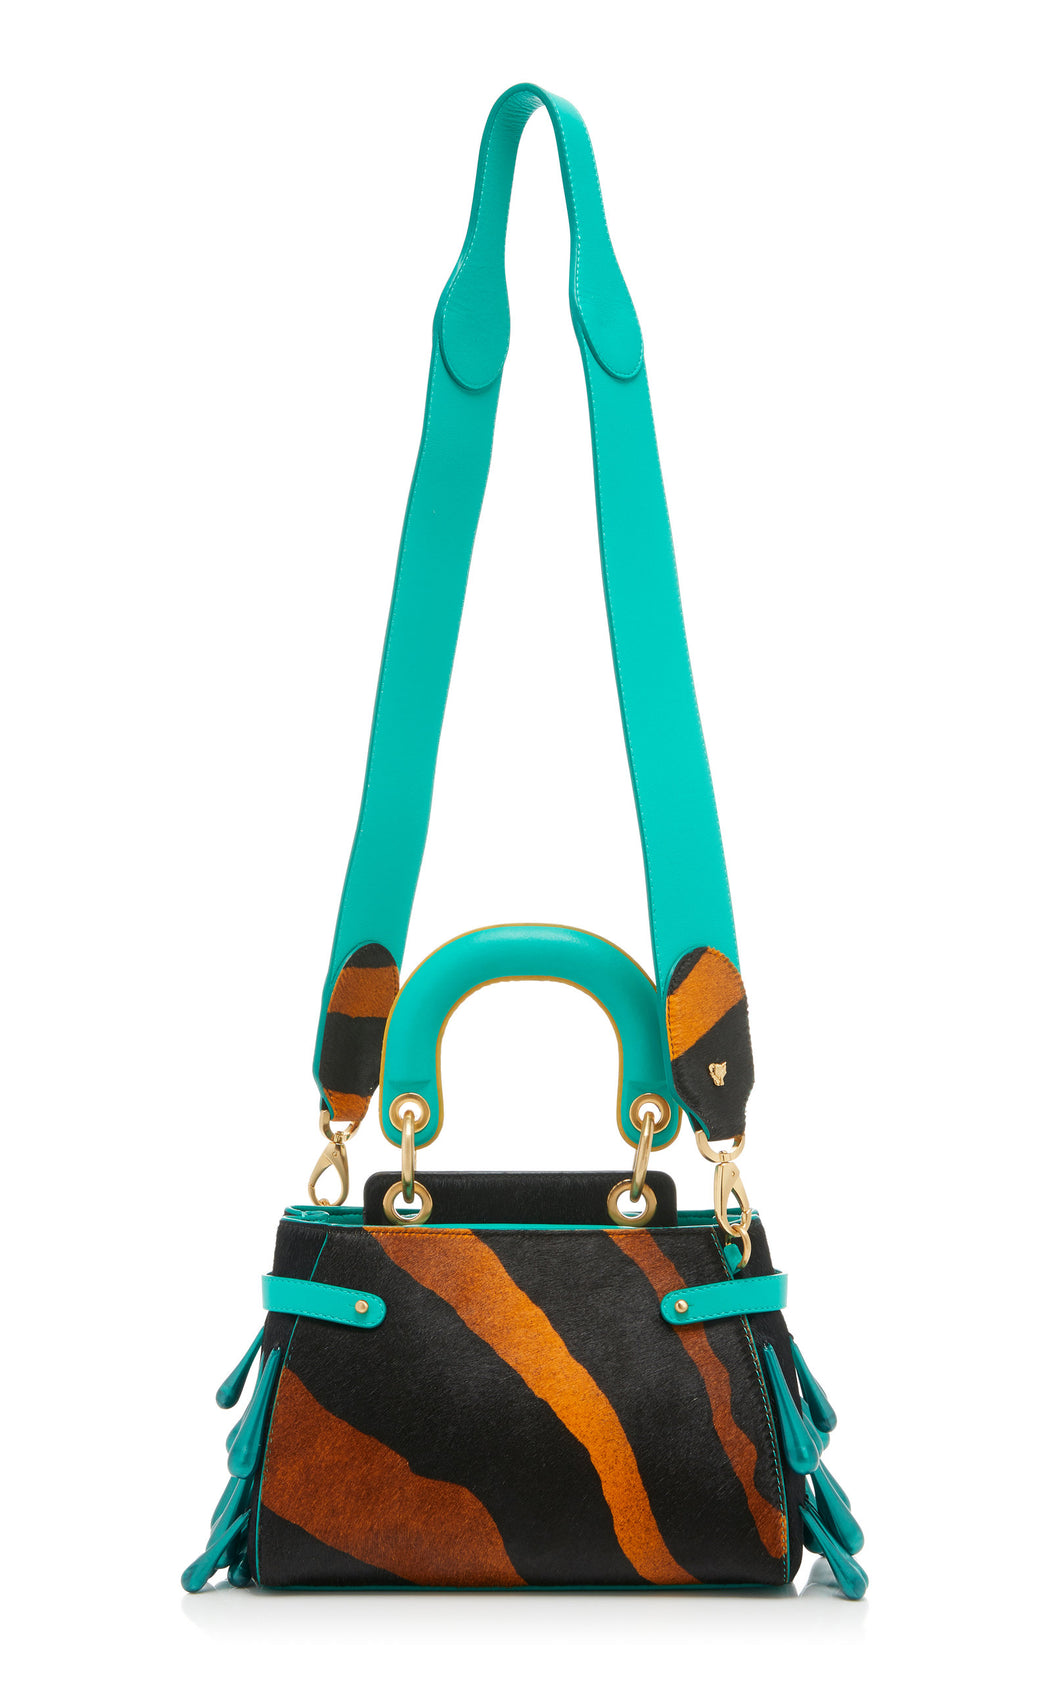 "A ladylike luxury frame bag in animal print cavallino with teal nappa leather that fits all the essentials. Comes with a detachable cross-body strap as shown and our special ""macaron"" top handle. The trapeze bag is embellished with pearlescent resin droplets."